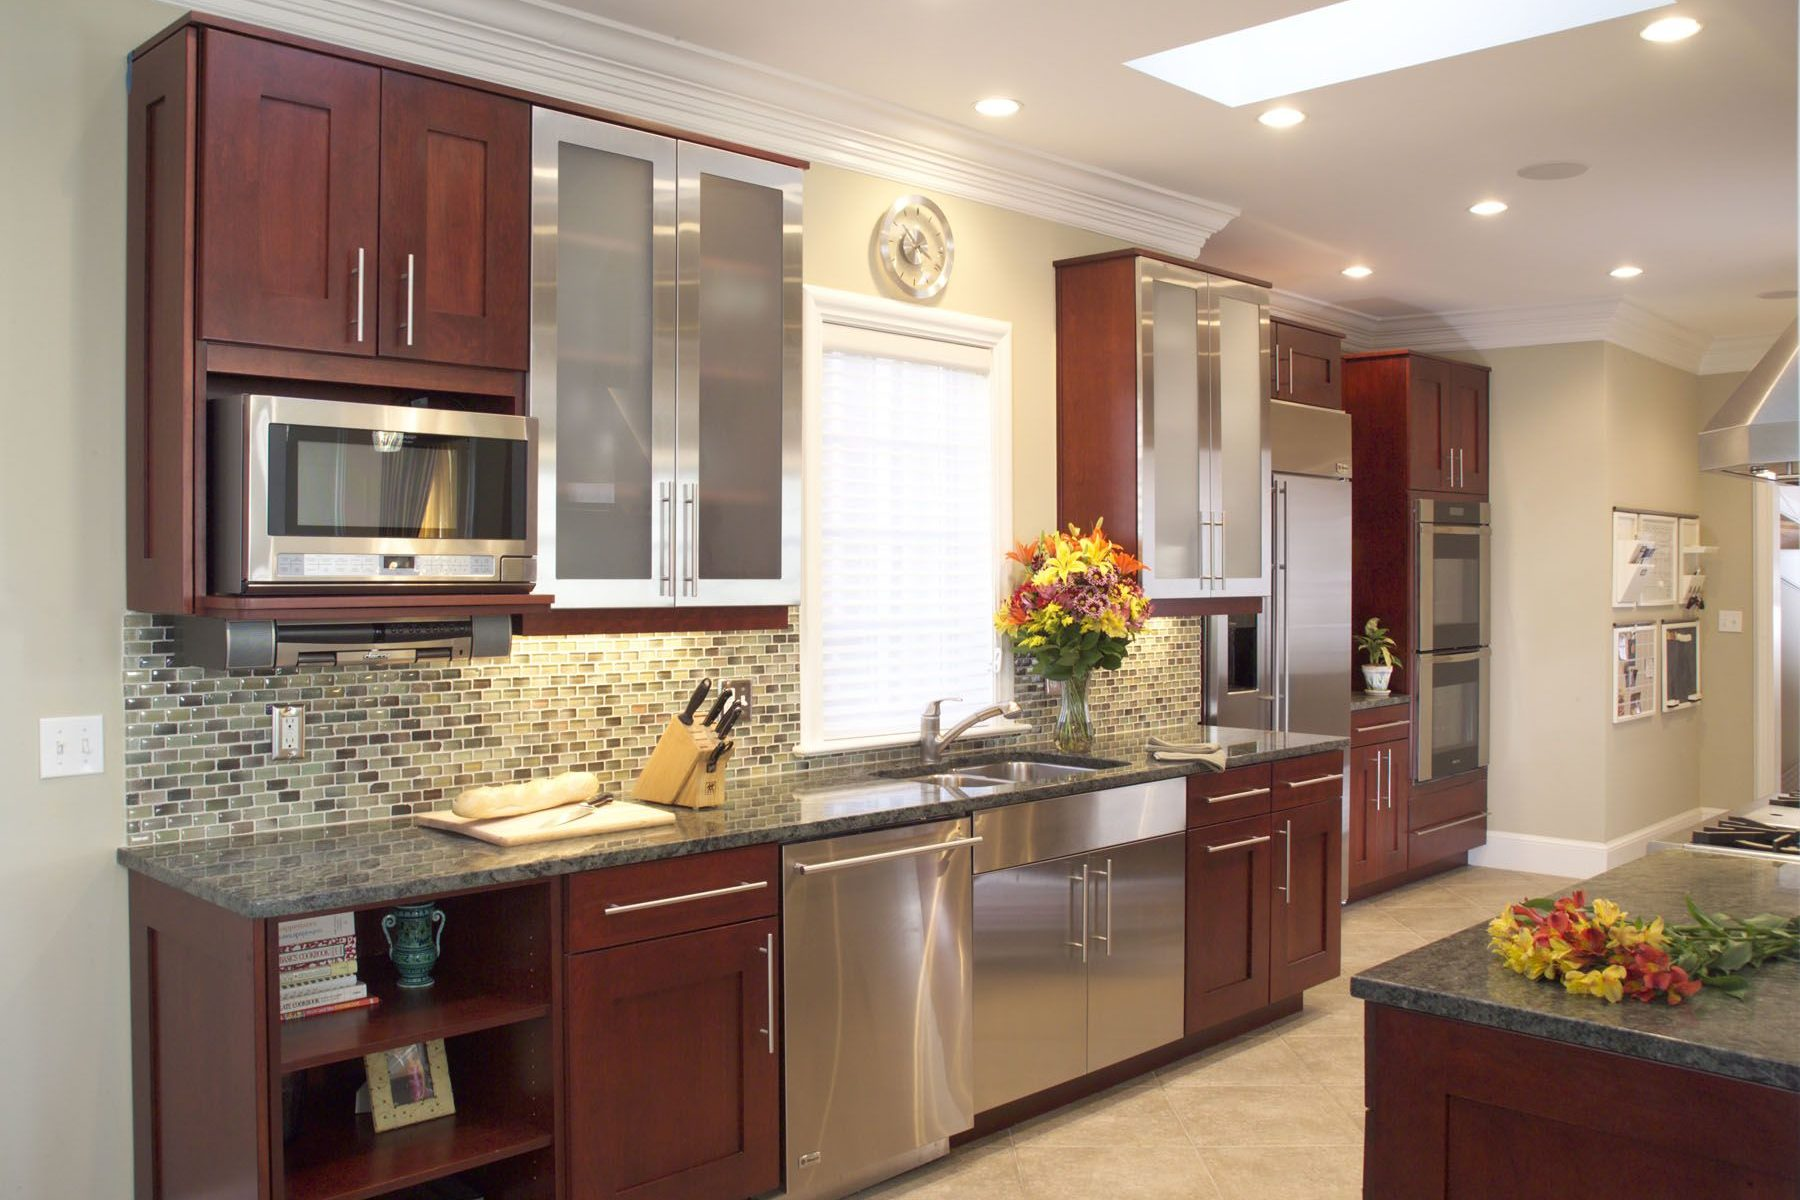 Custom Cabinet Designs from Wood-Mode - For Your Kitchen Makeover